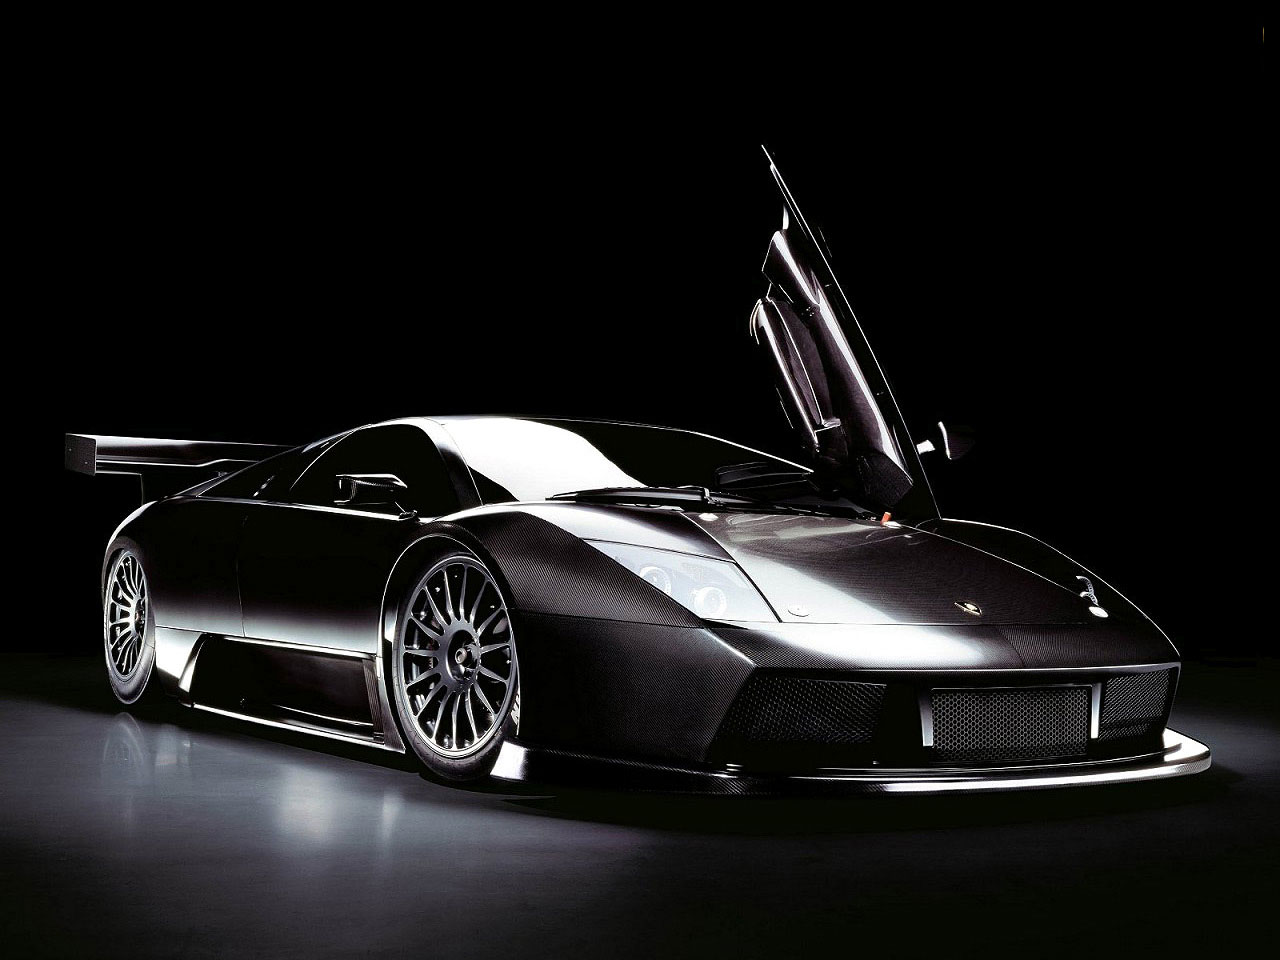 Cool Car Wallpapers Nicest Cars 1280x960